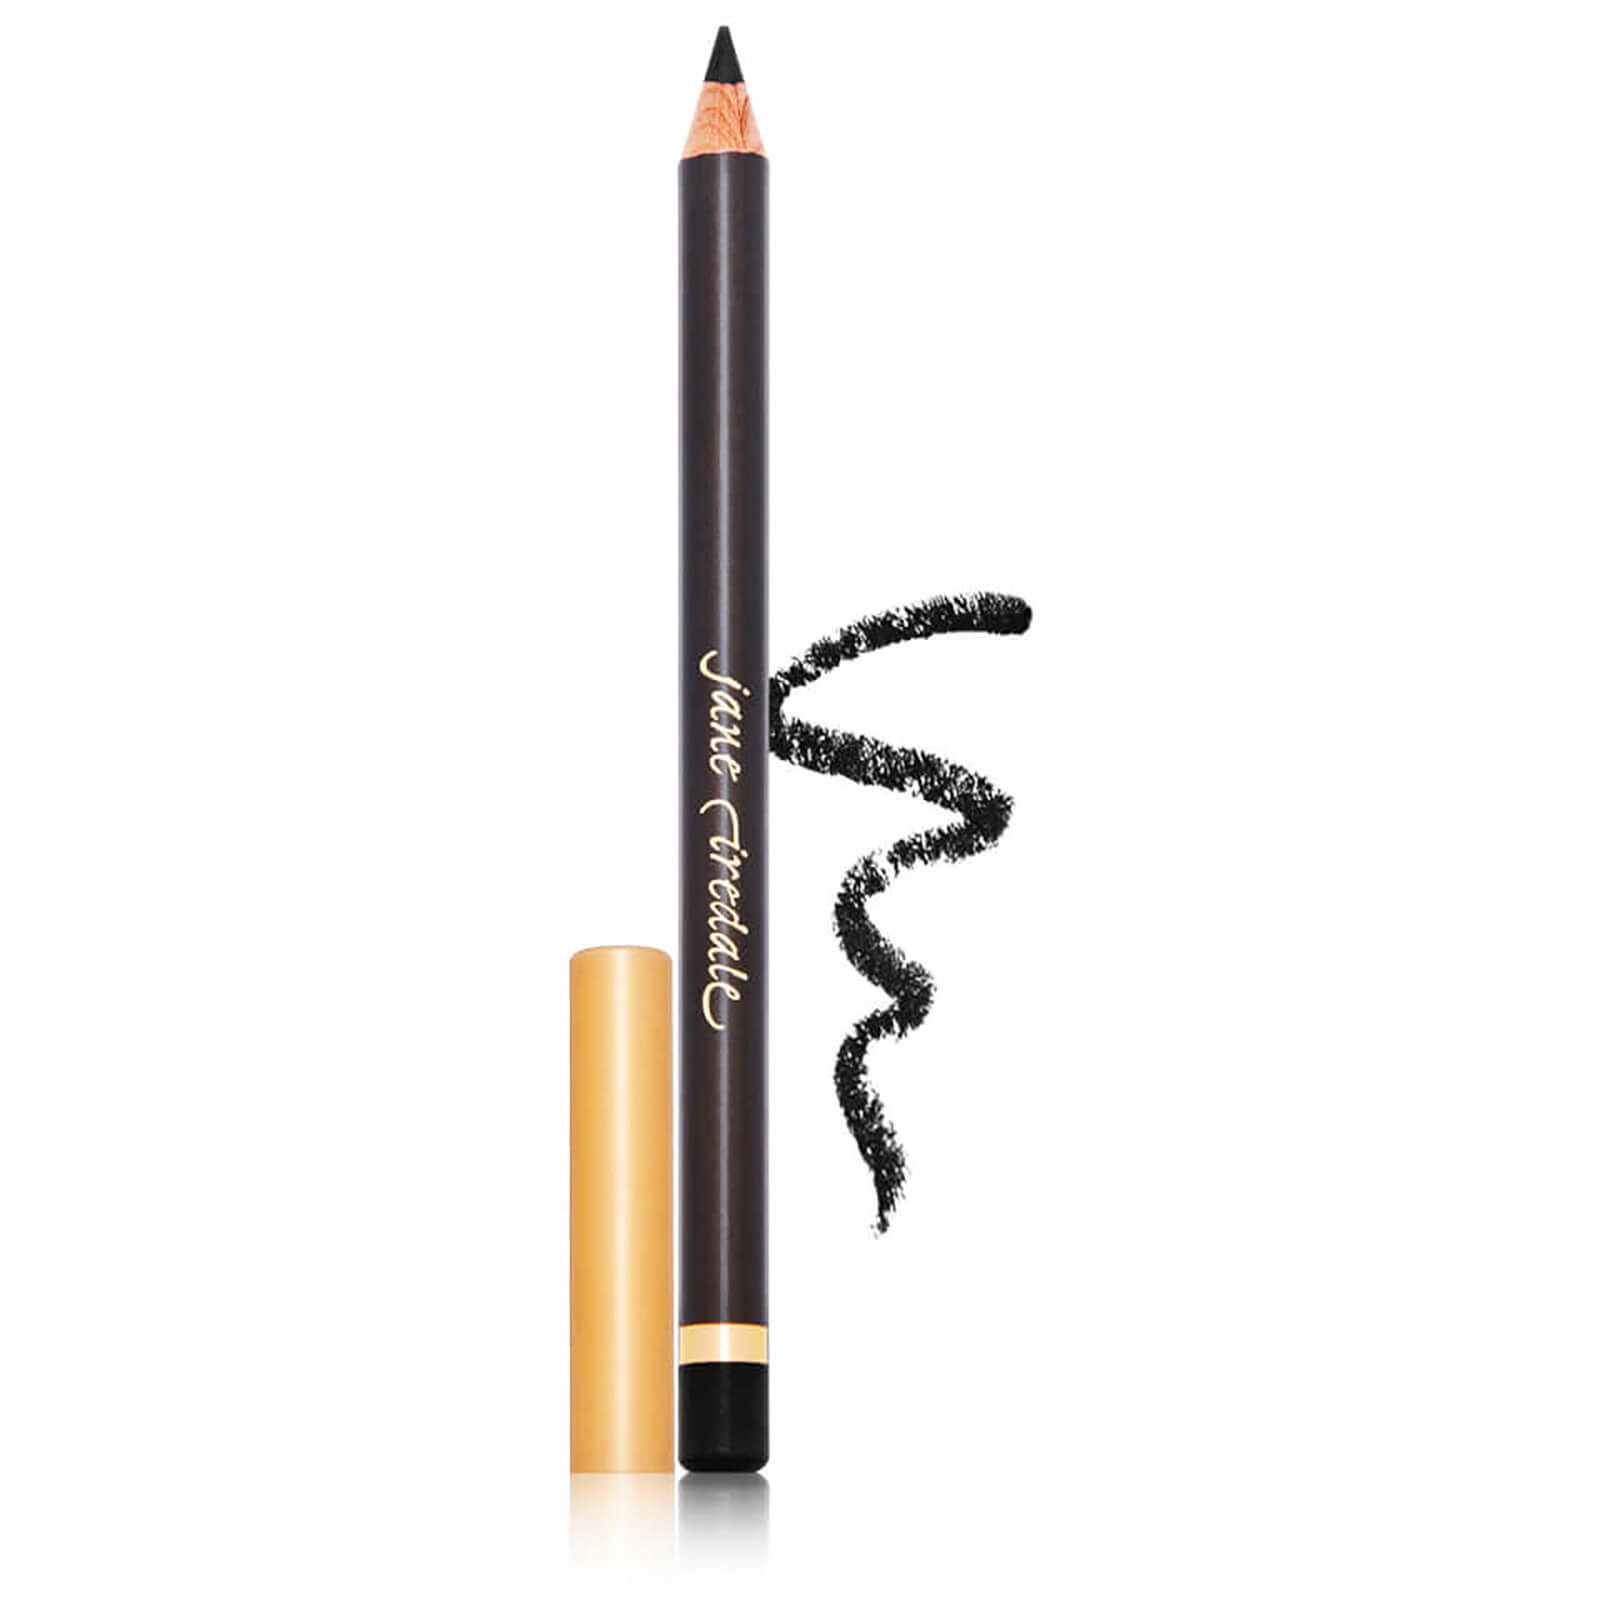 Jane Iredale Eye Pencil - Taupe